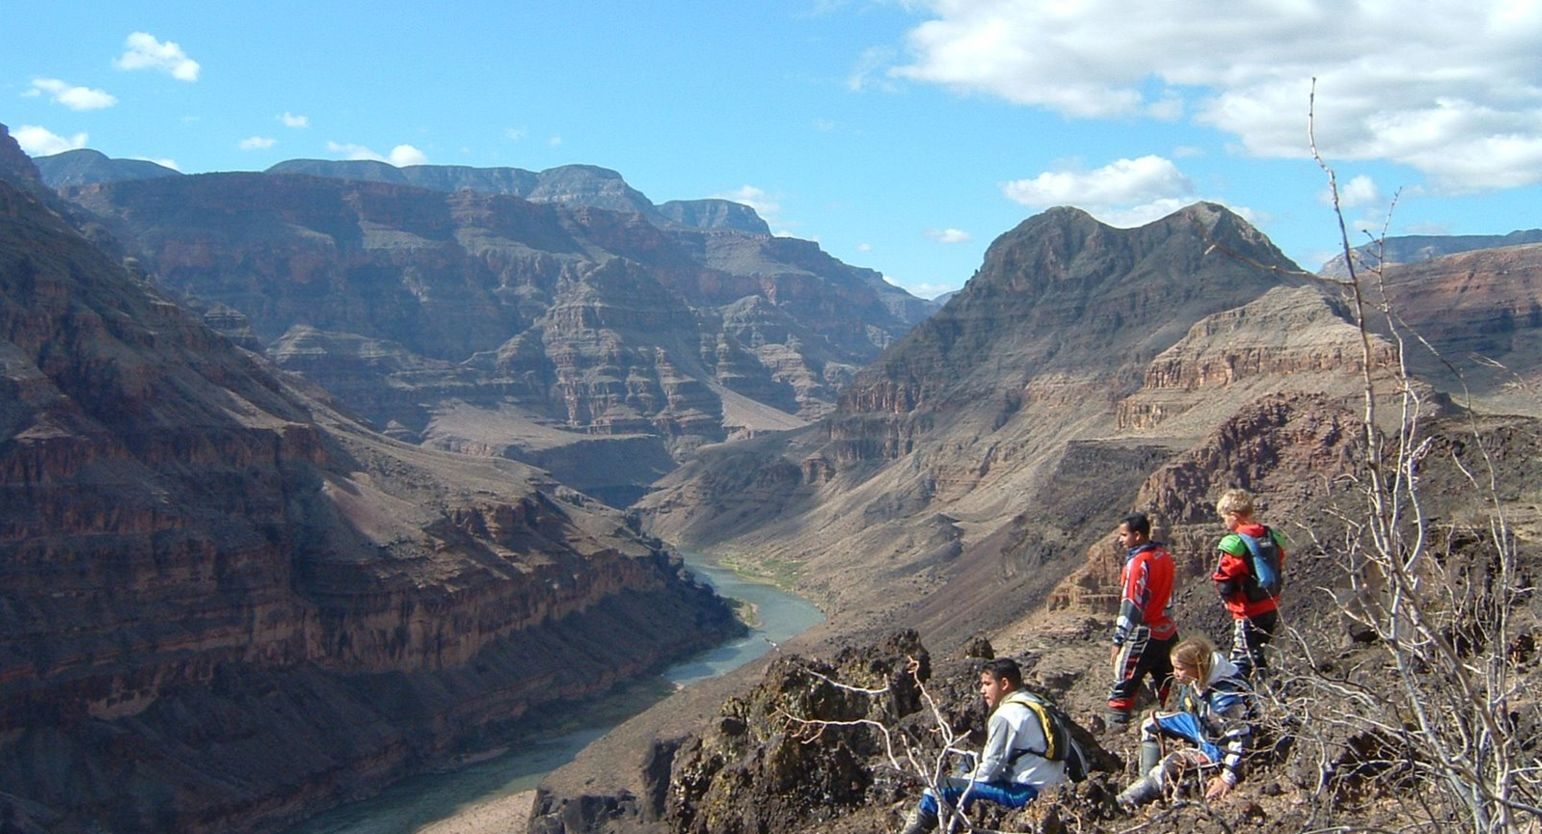 View of Grand Canyon from the bottom at Bar 10 ranch in Grand Canyon North with ATV riding guests